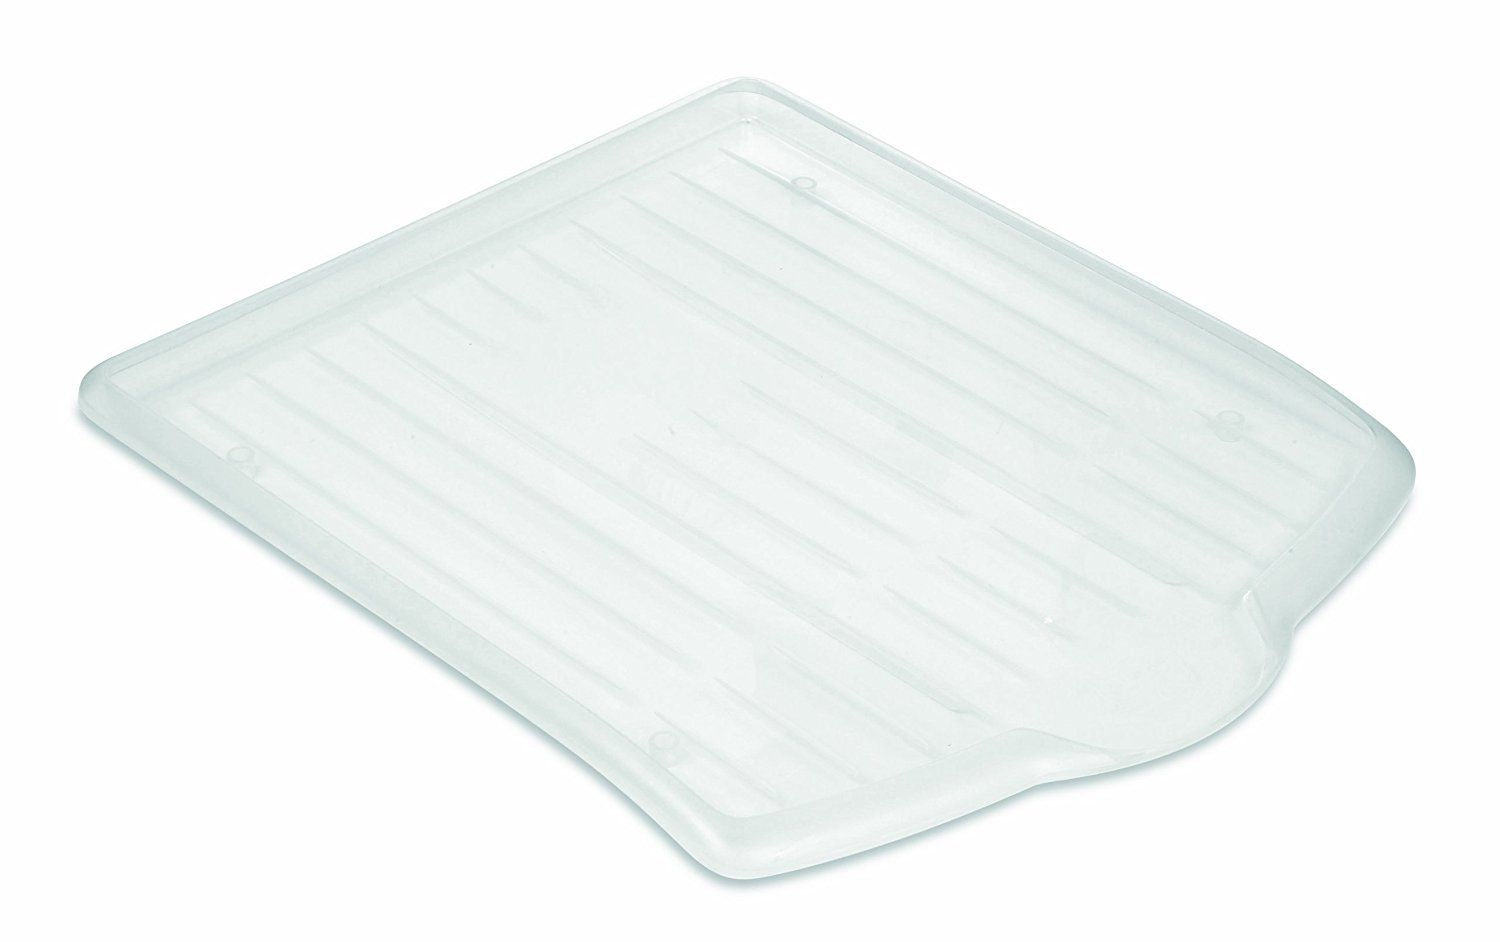 ADDIS Drip Tray in Translucent/ Clear: Amazon.co.uk: Kitchen & Home ...